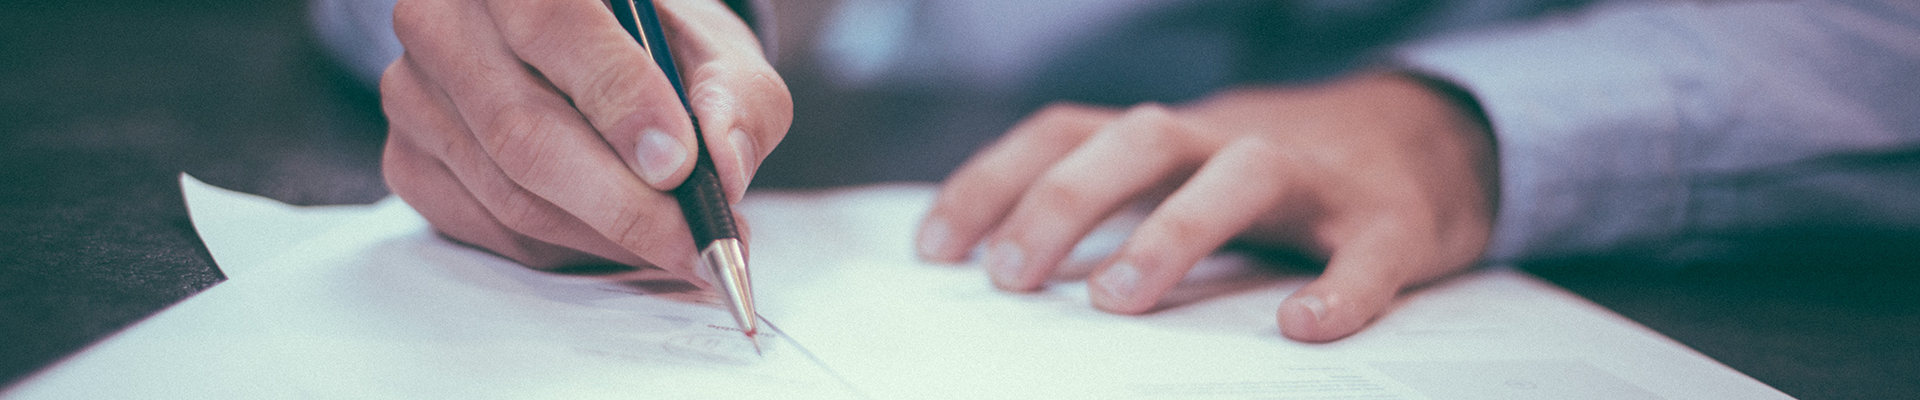 How to Write a Press Release The Media Will Actually Read